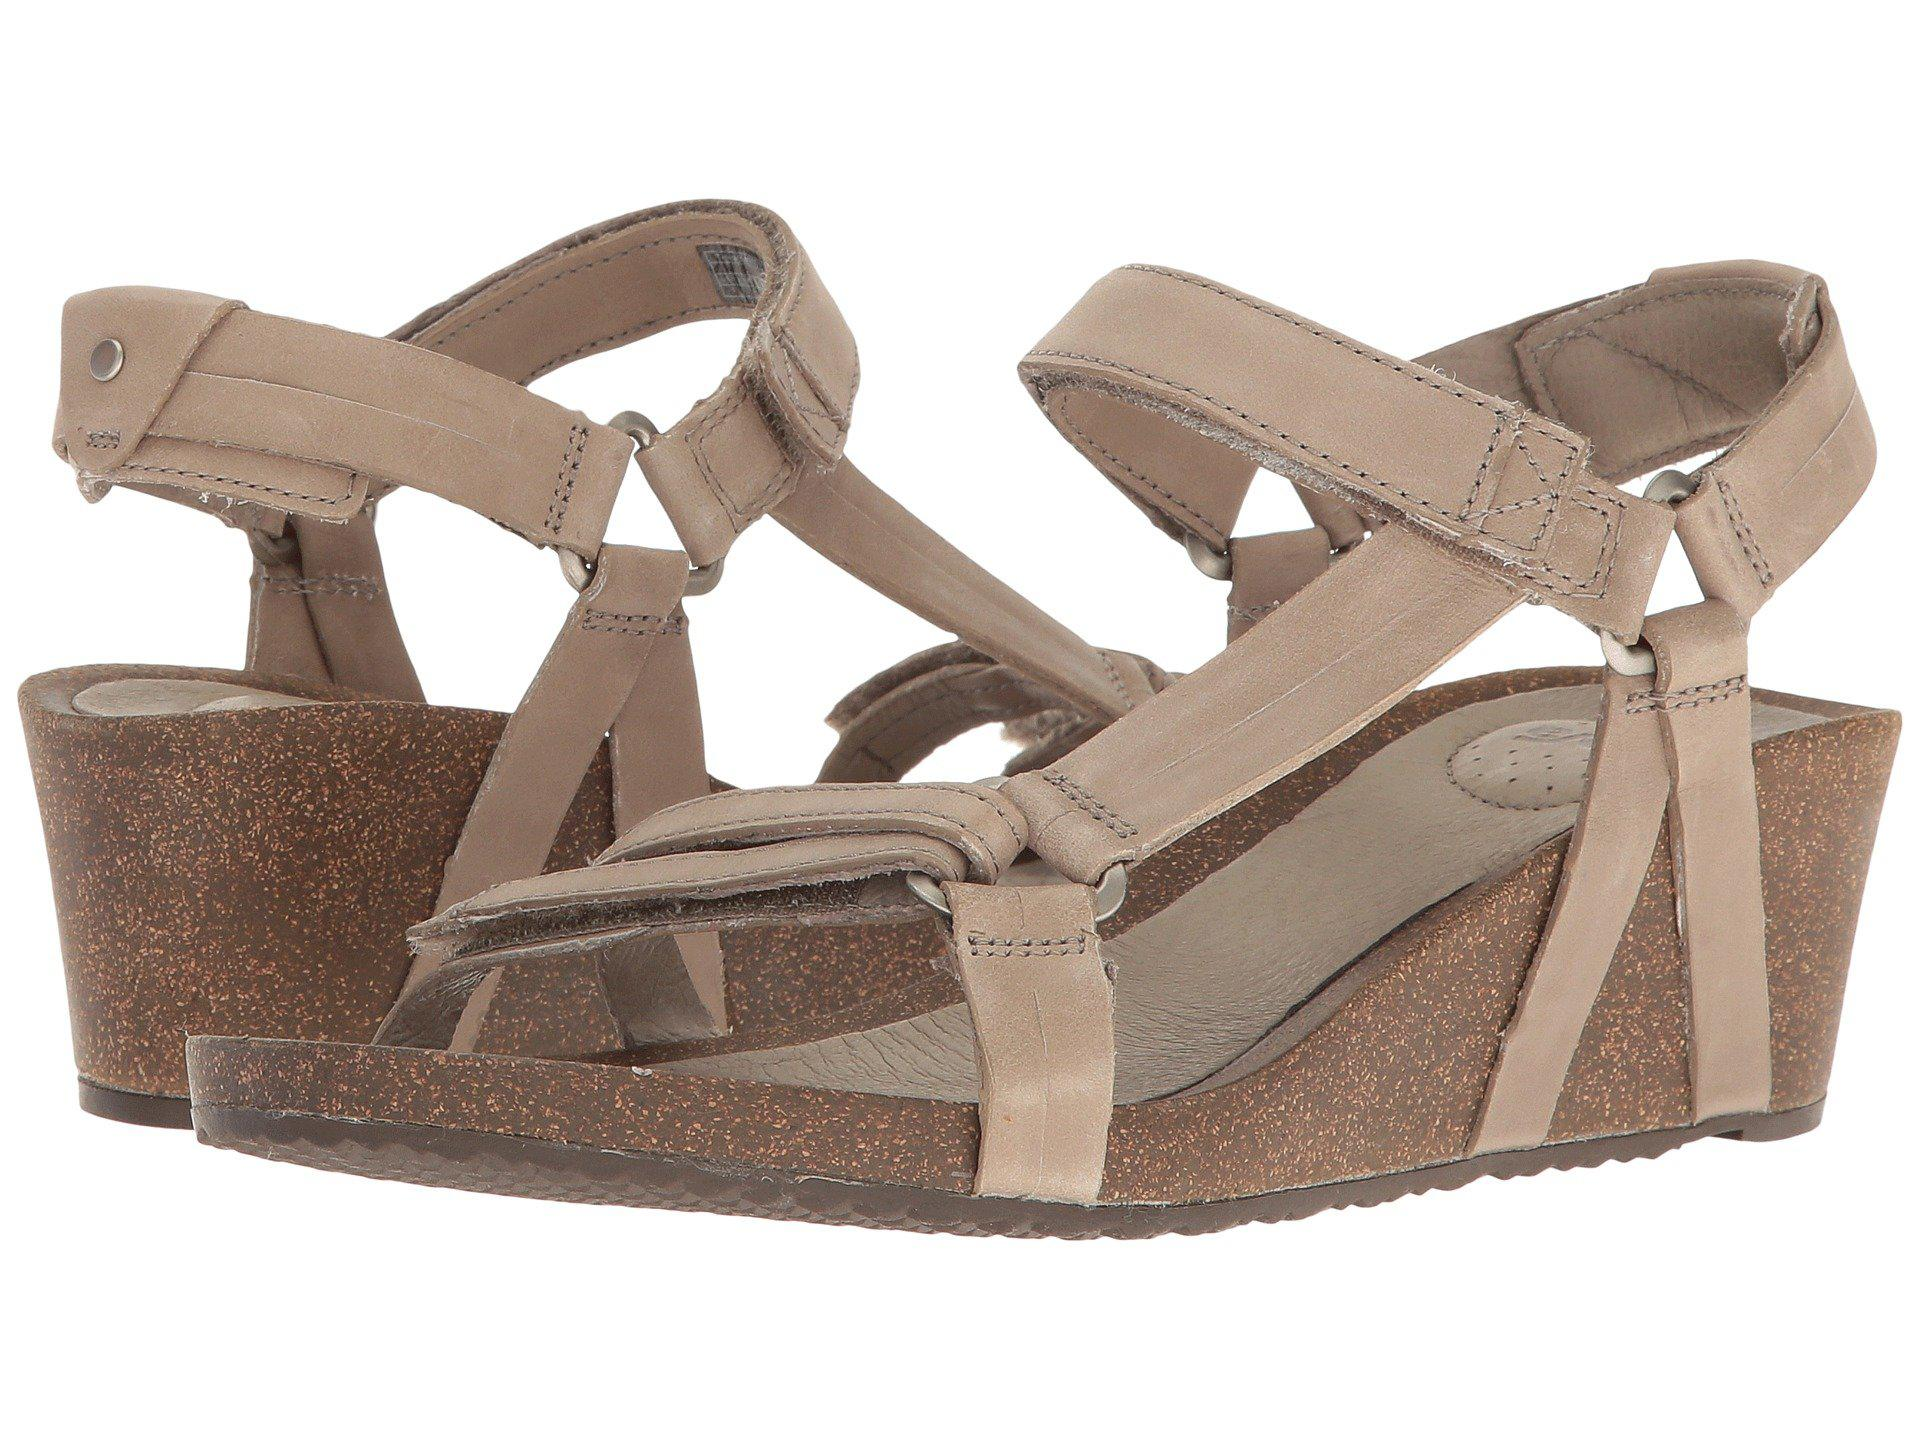 8556a2733a30 Lyst - Teva Ysidro Universal Wedge (taupe) Women s Wedge Shoes in Brown